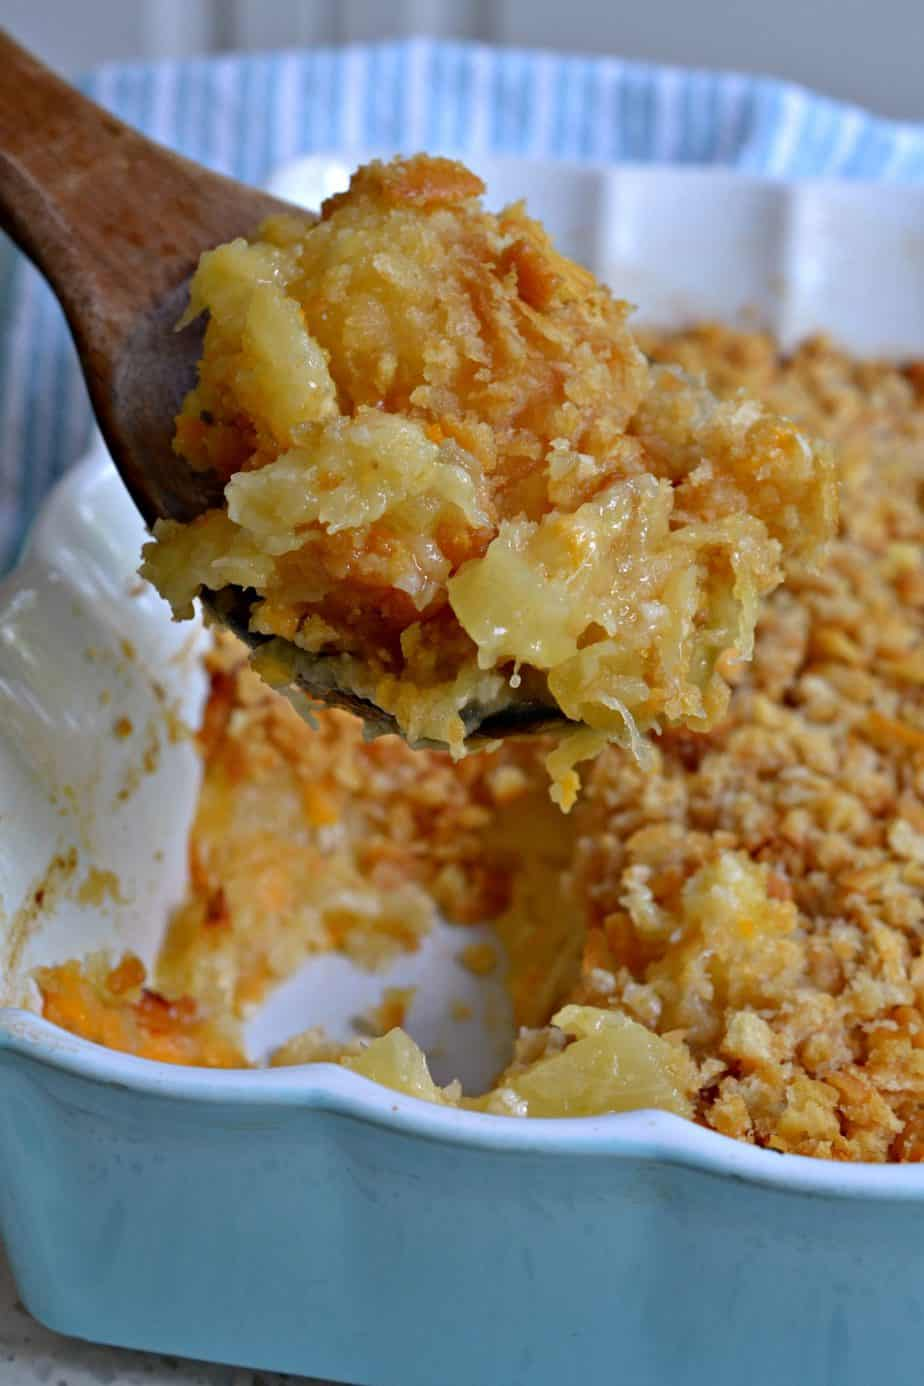 This delectable pineapple casserole can be served as a side dish or a dessert.